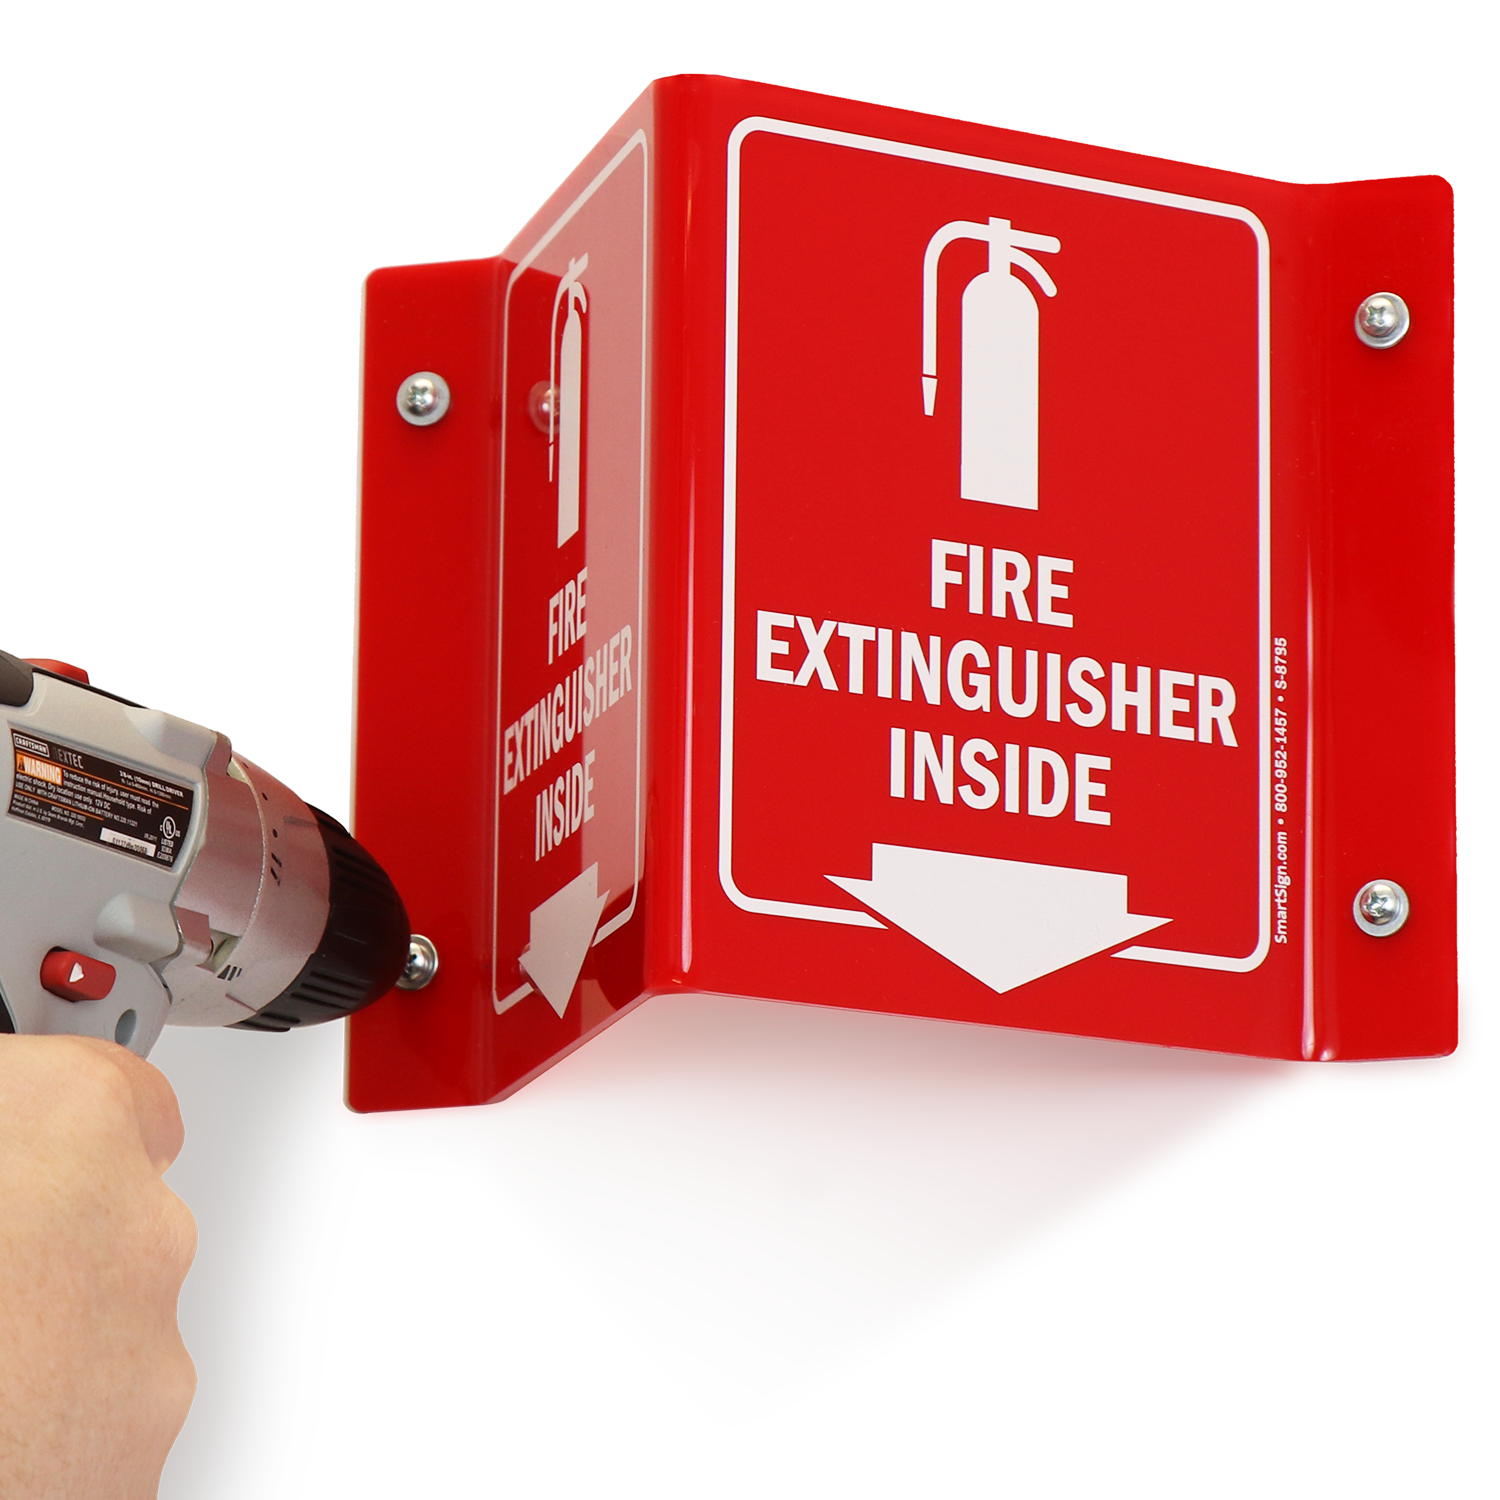 Fire Extinguisher Inside Signs with Down Arrow